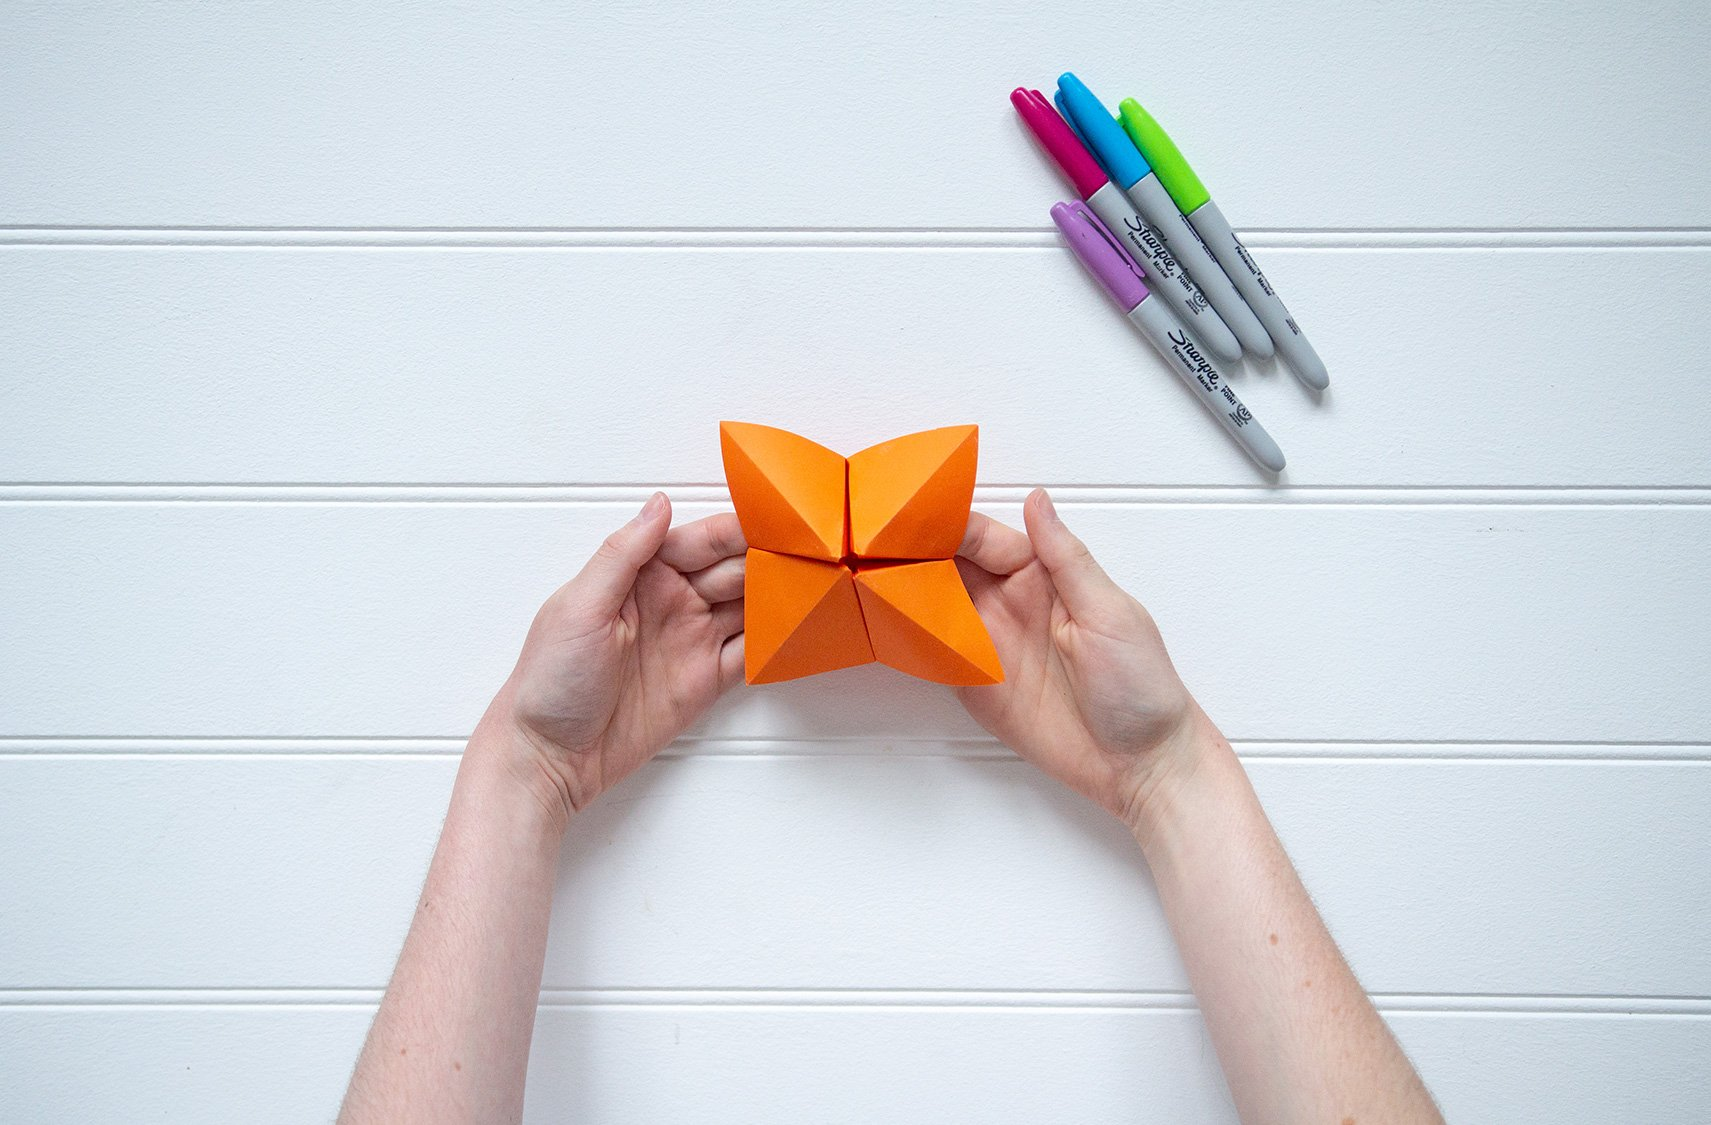 How to make a chatterbox (also known as a fortune teller)